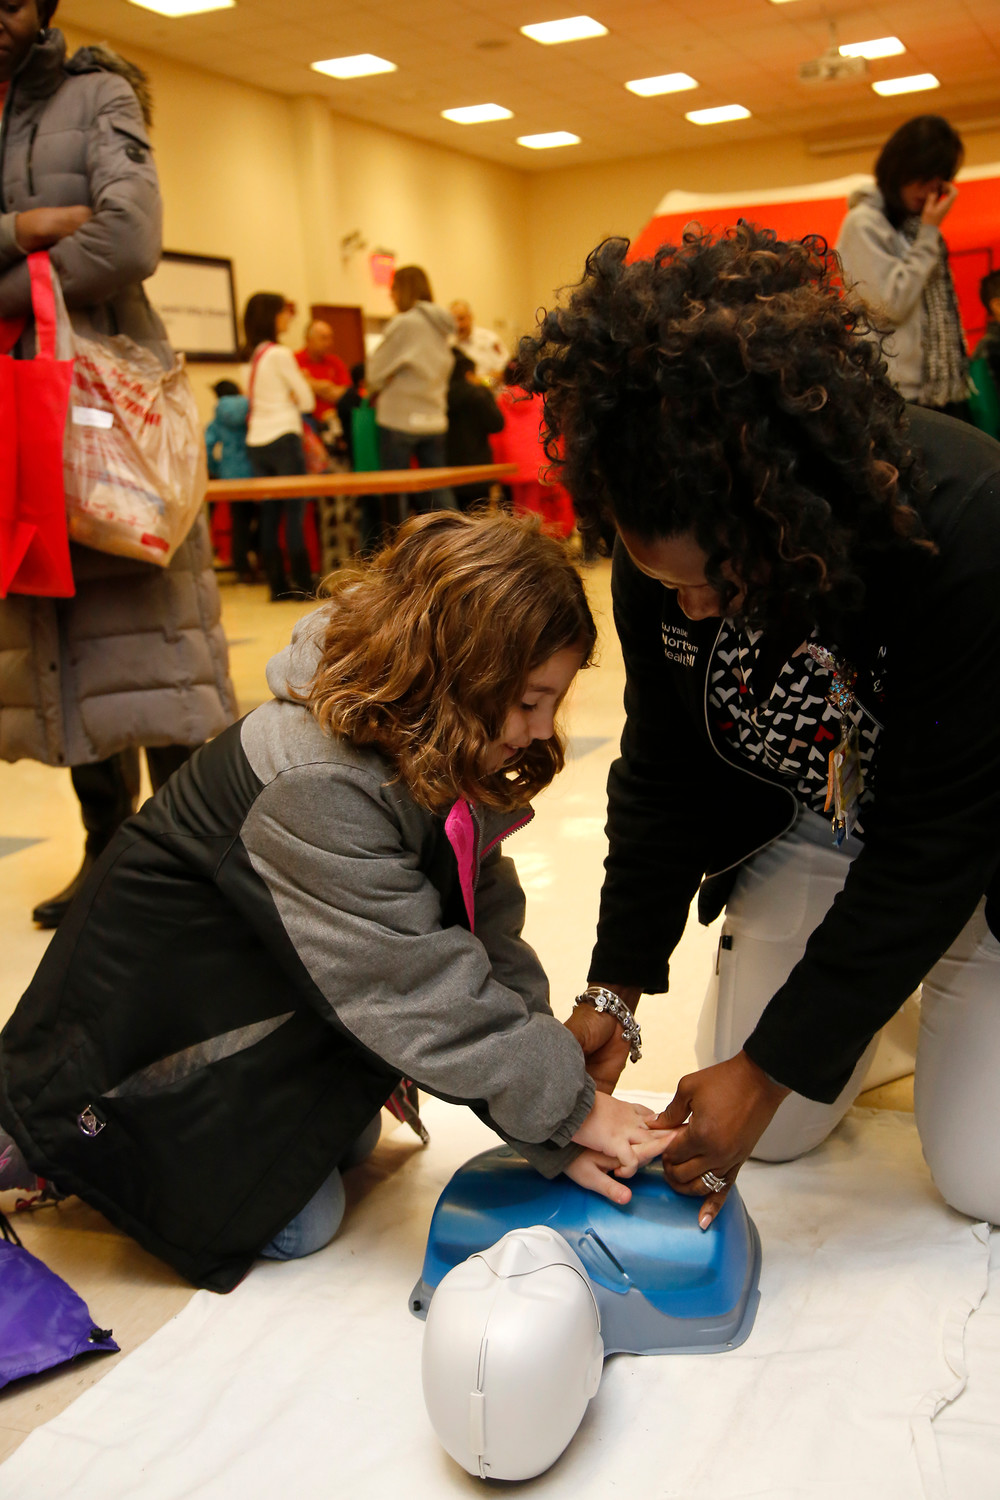 Third-grader Mia Lorello learned how to administer CPR.